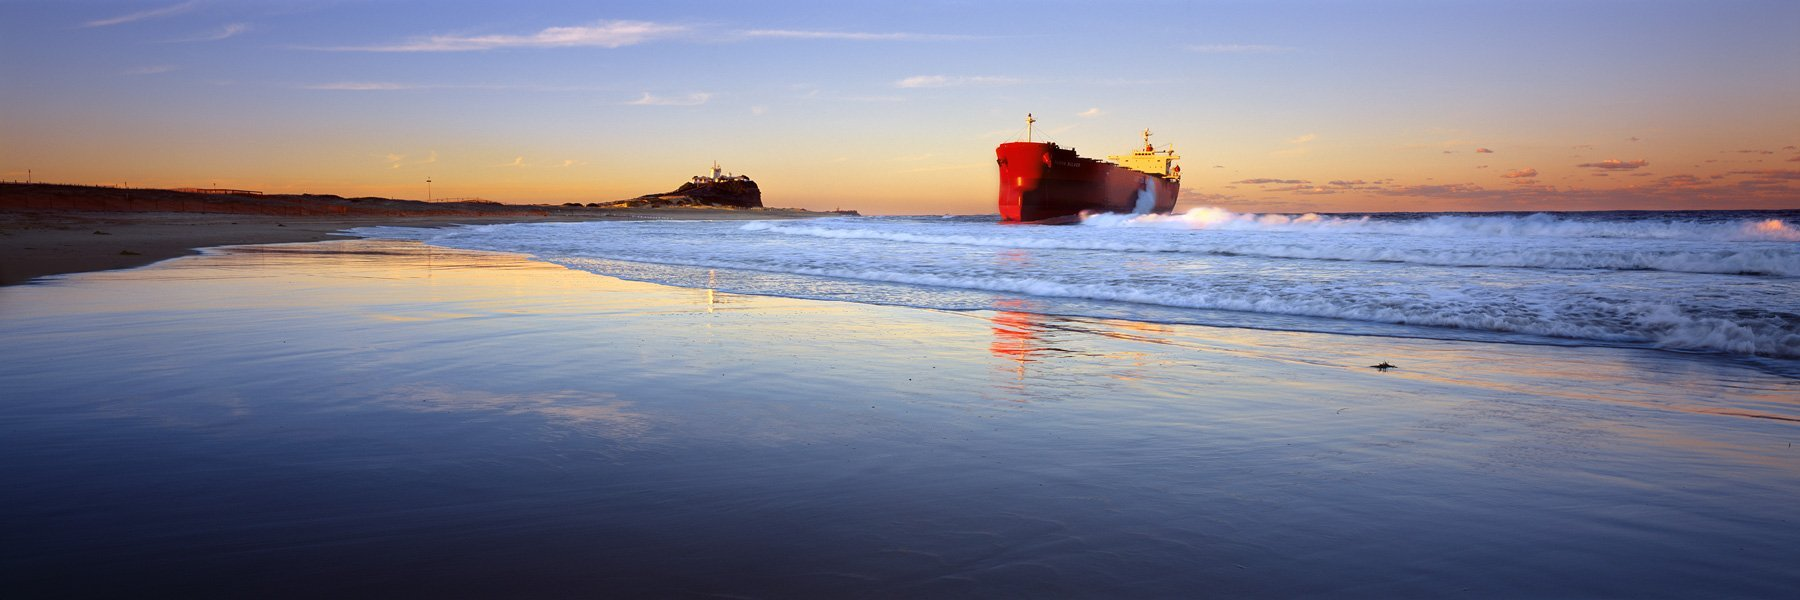 Pasha Bulker, Run Aground, Nobbys Beach, NSW